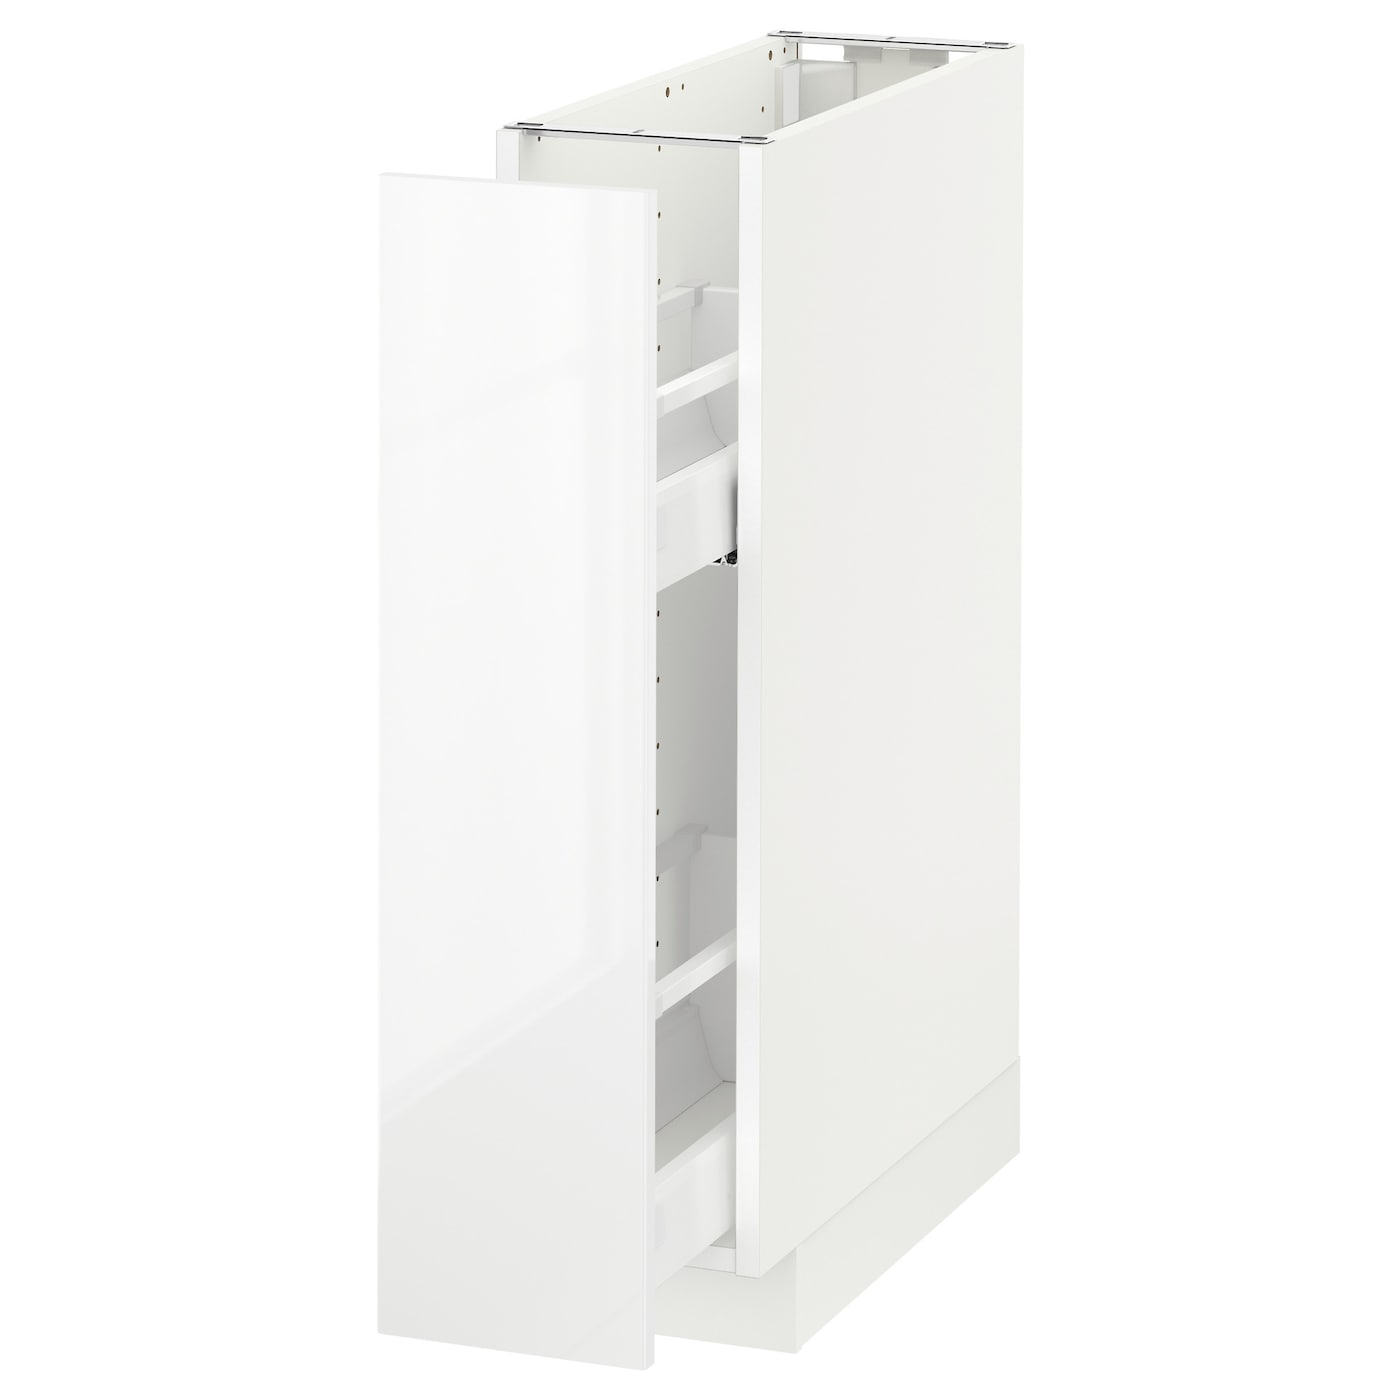 Metod Element Bas Rgts Coulissants Blanc Ringhult Blanc 20x60 Cm Ikea